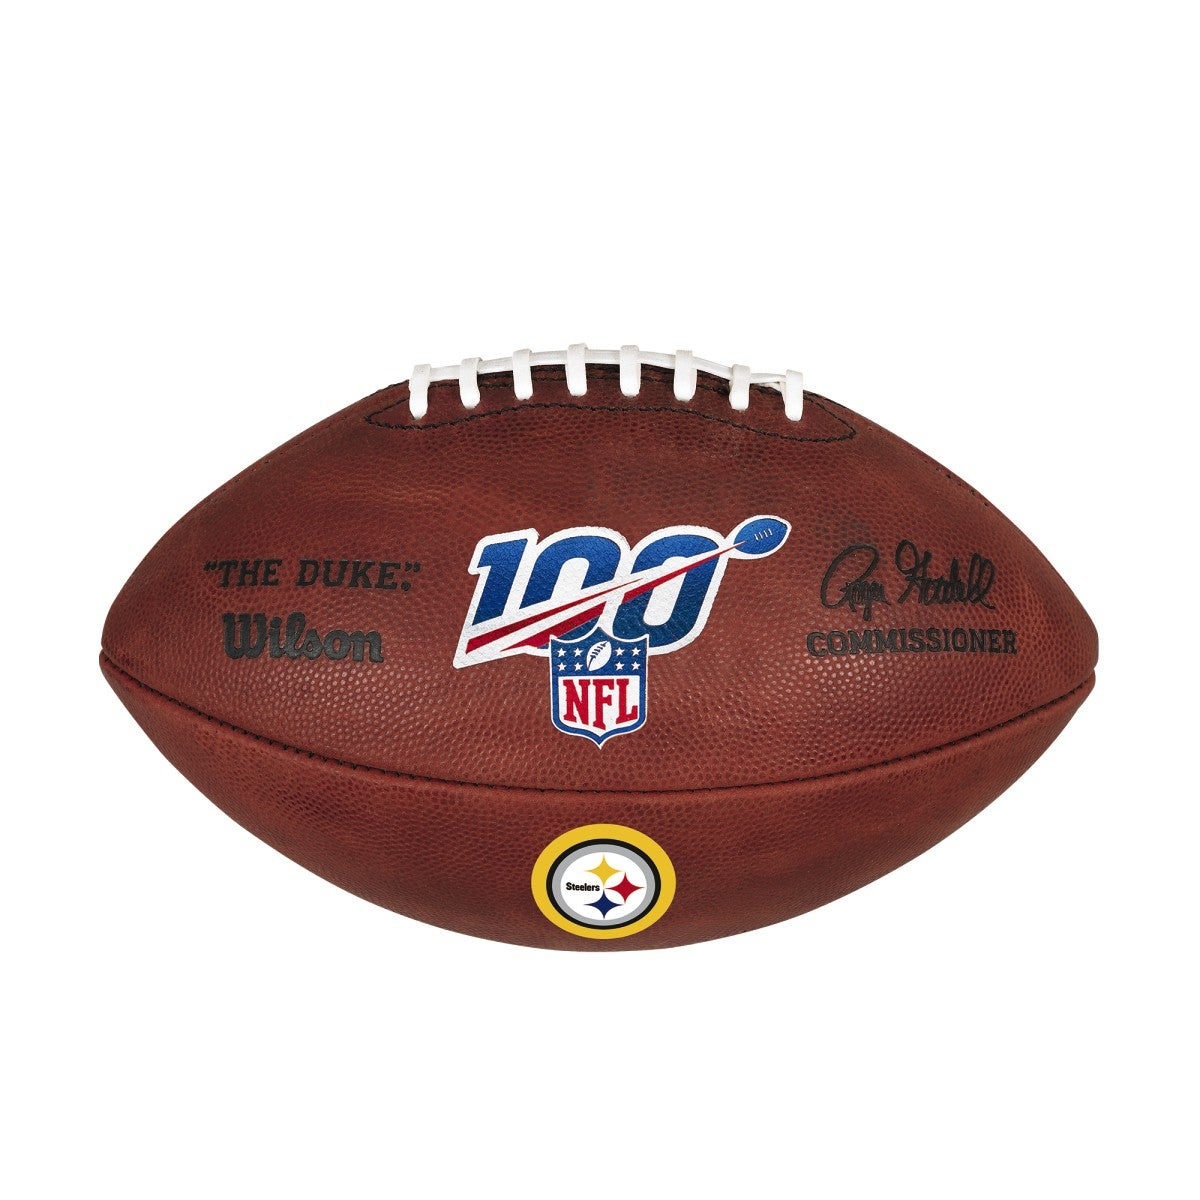 NFL 100 THE DUKE DECAL NFL FOOTBALL - PITTSBURGH STEELERS